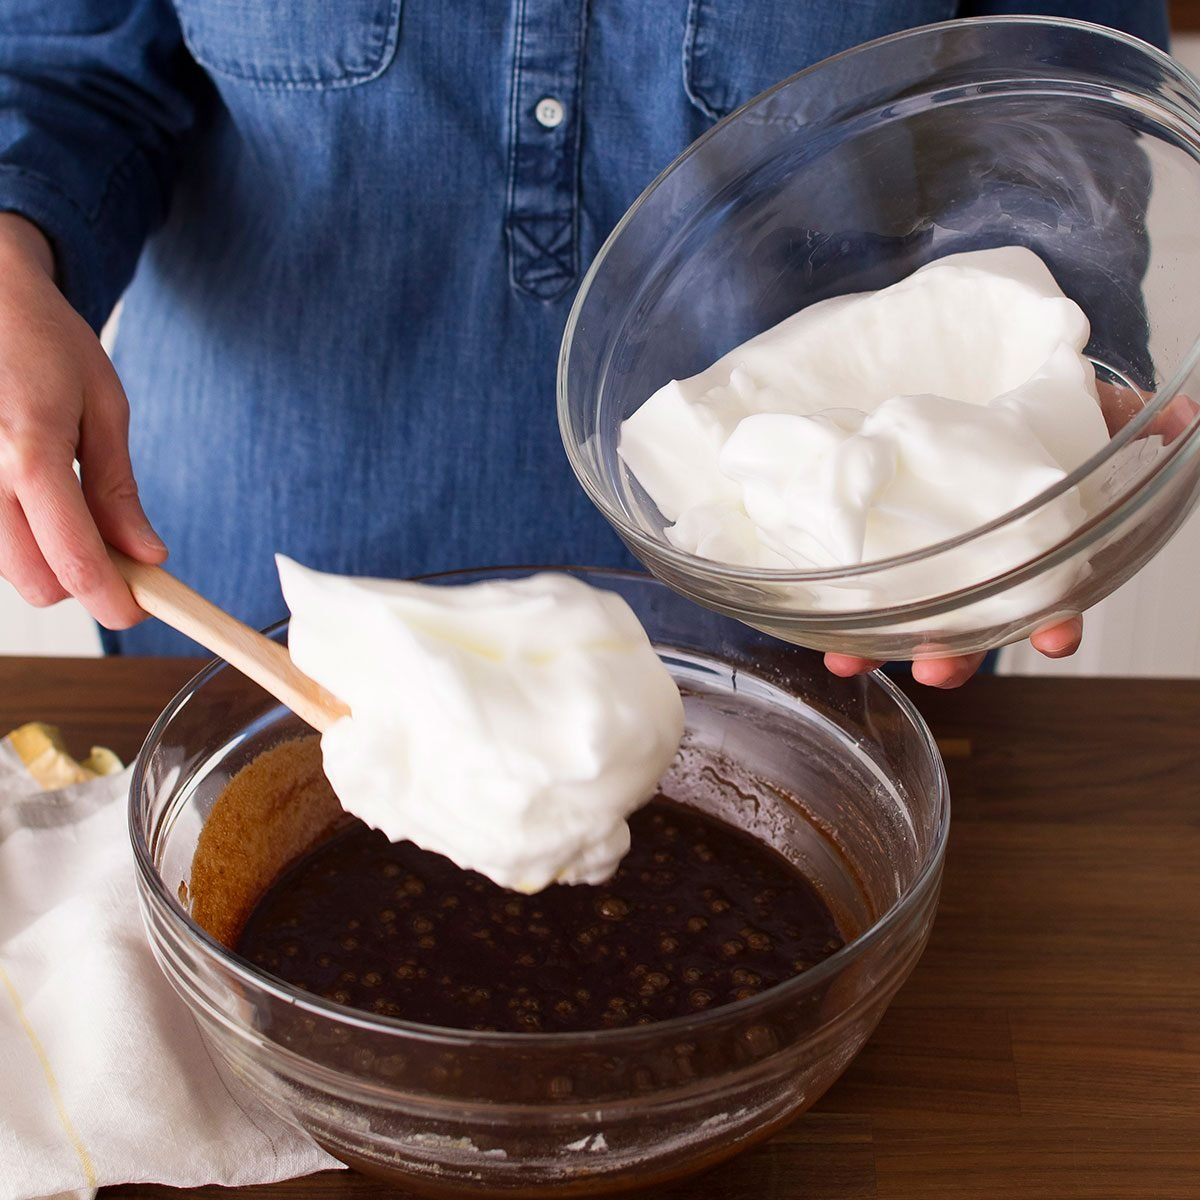 How to Fold Ingredients for Best-Ever Baking